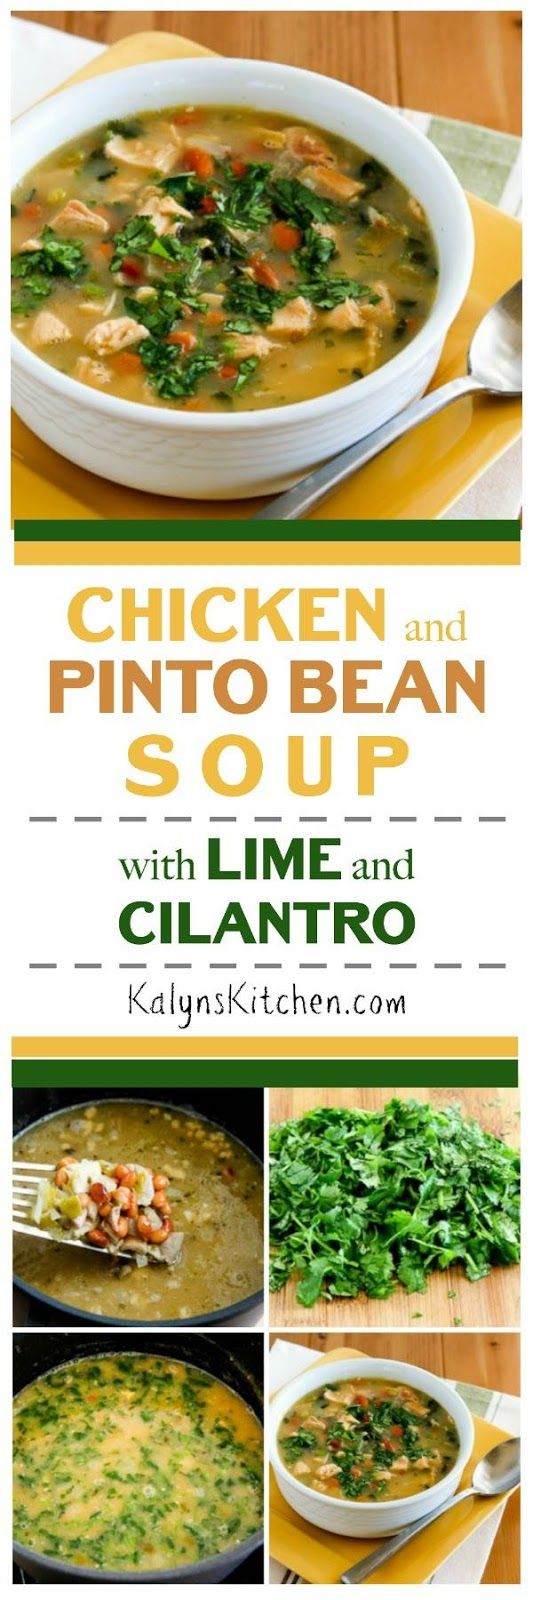 Chicken and Pinto Bean Soup  with Lime and Cilantro is an easy and delicious soup that can start with leftover rotisserie chicken!  You can also omit the pinto beans and make this a great low-carb soup.  [found on KalynsKitchen.com] #ChickenSoup #MexicanChickenSoup #ChickenPintoBeanSoup